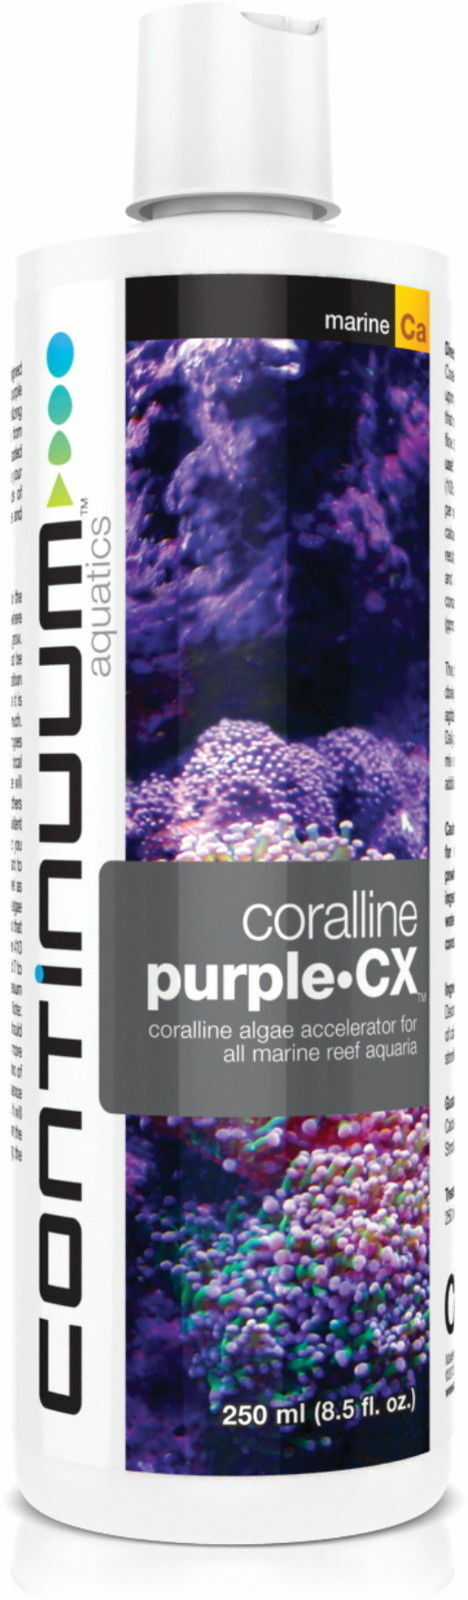 CORALINE ALGAE ACCELERATOR FOR REEF AQUARIA 500ml (High Quality and great value)